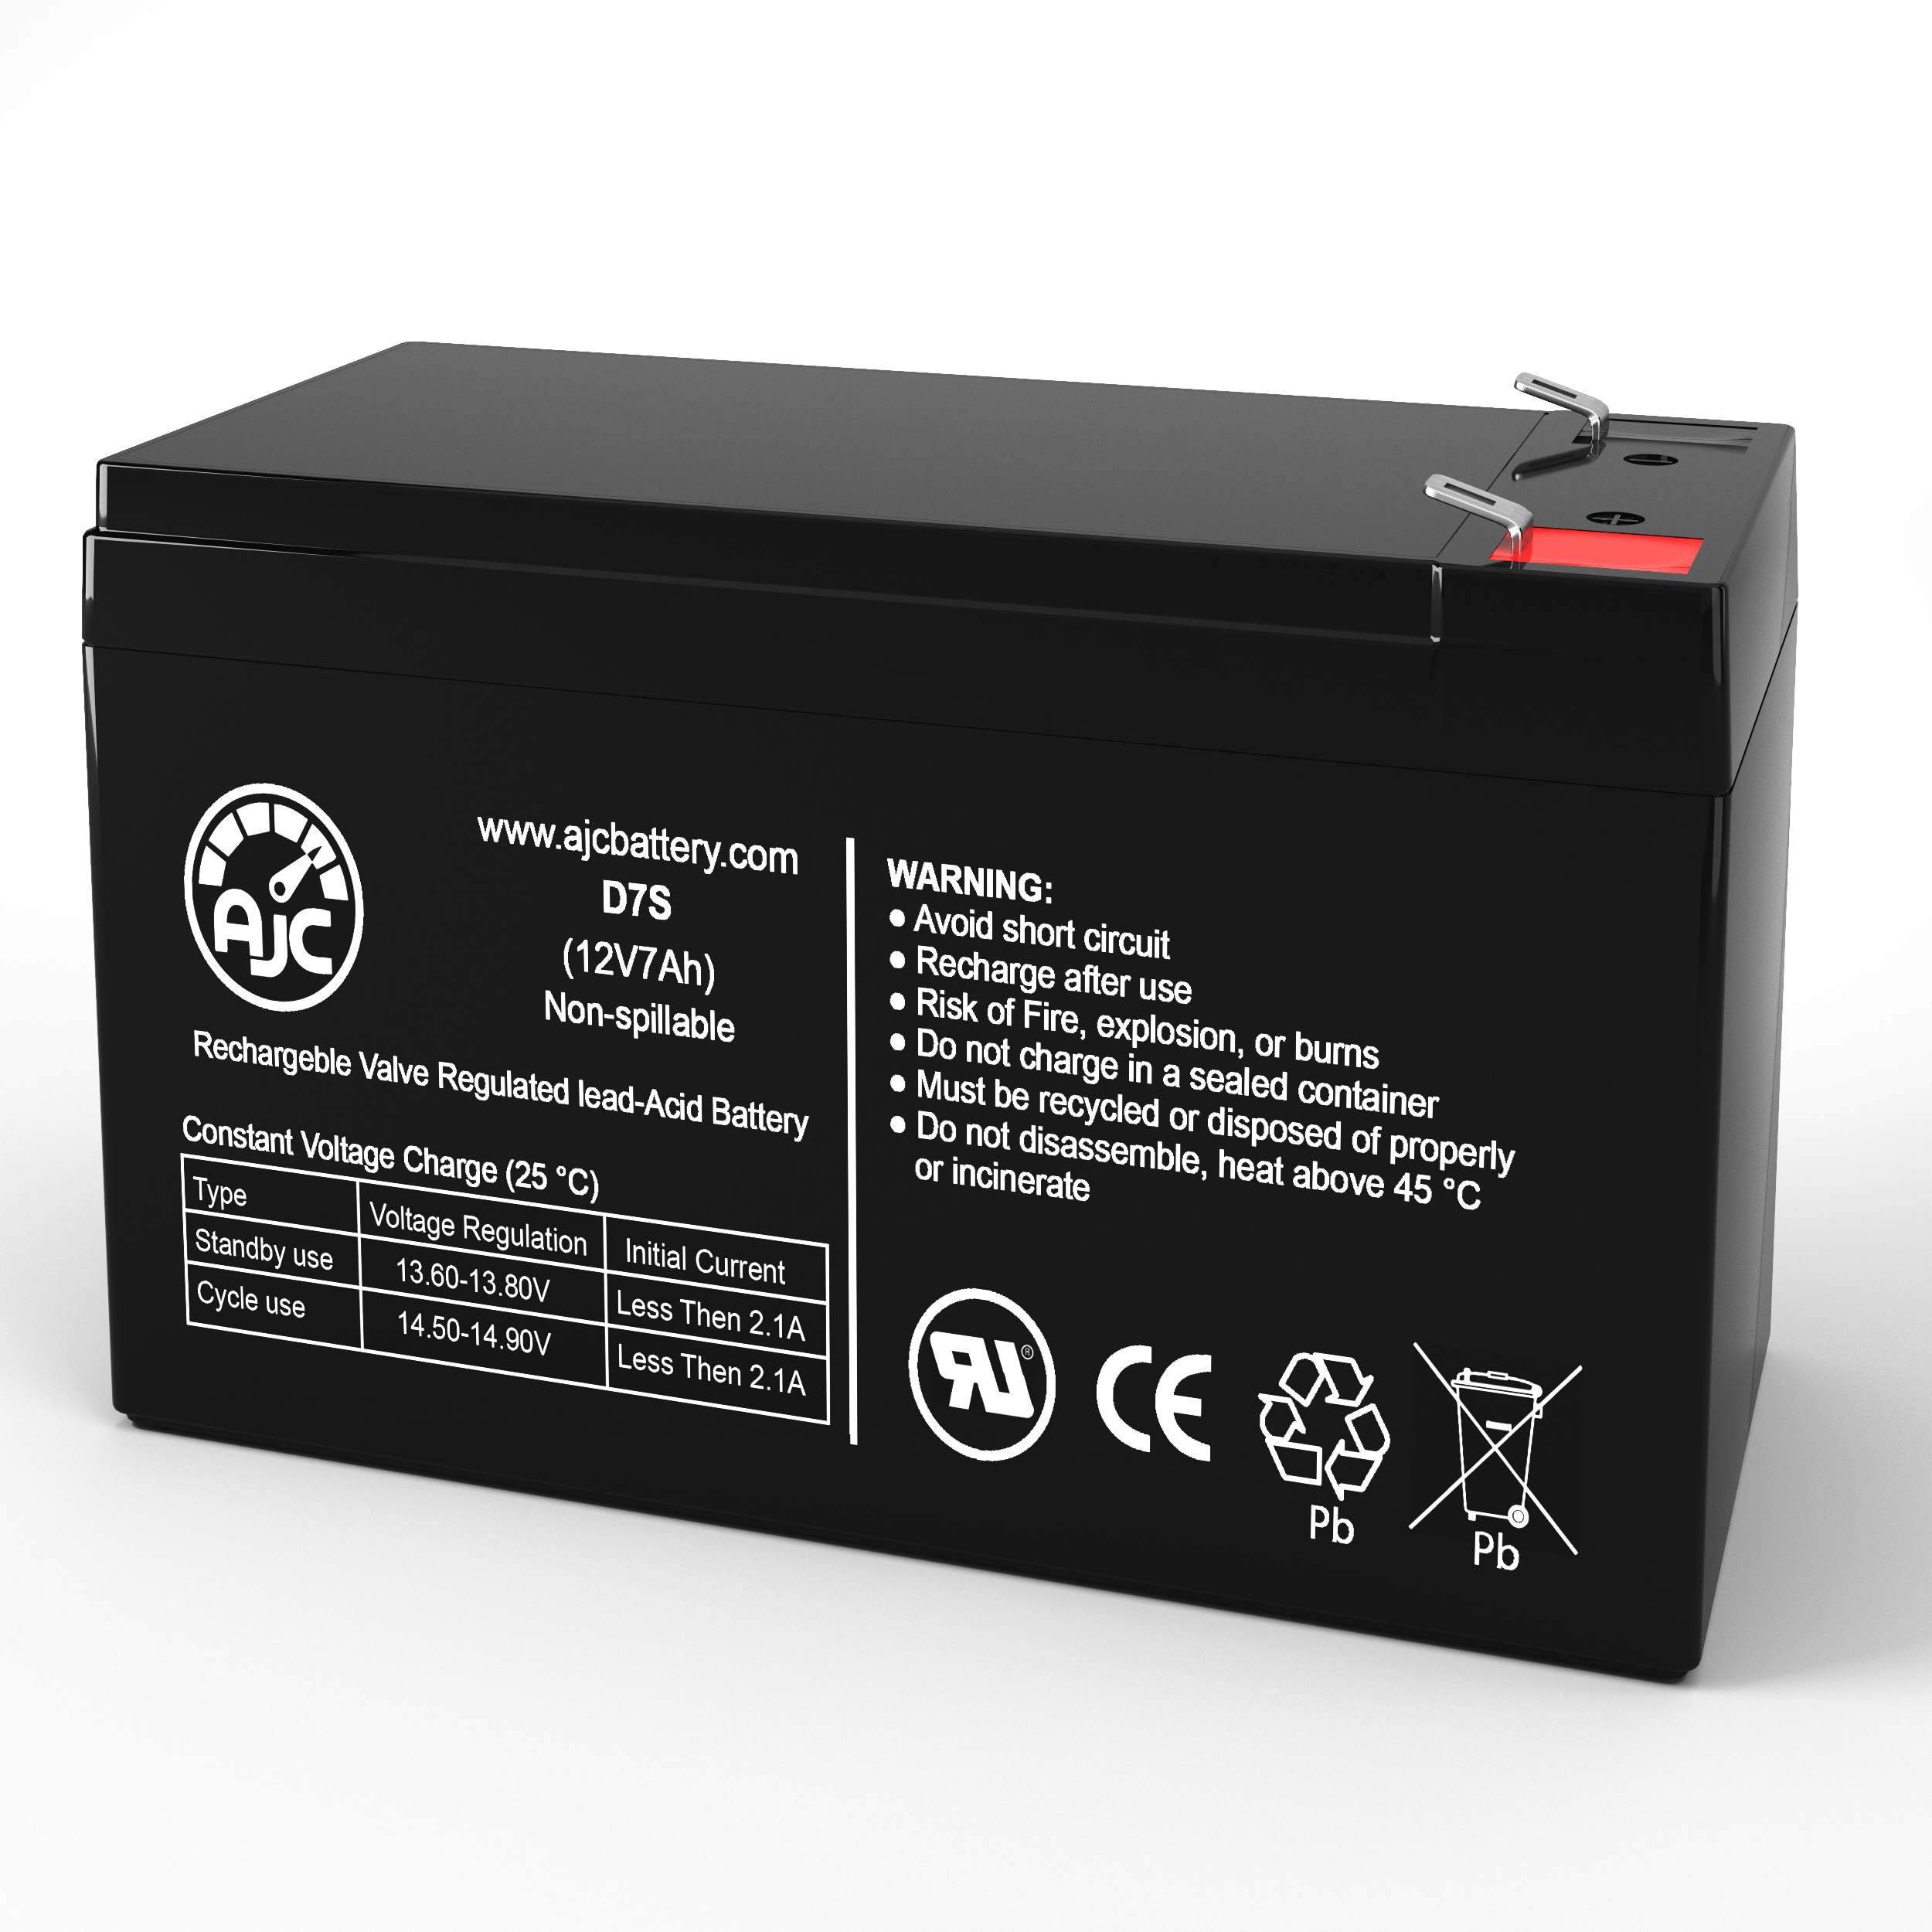 This is an AJC Brand Replacement GE Digital Energy LanPro LP8-31 LP10-31 12V 7Ah UPS Battery